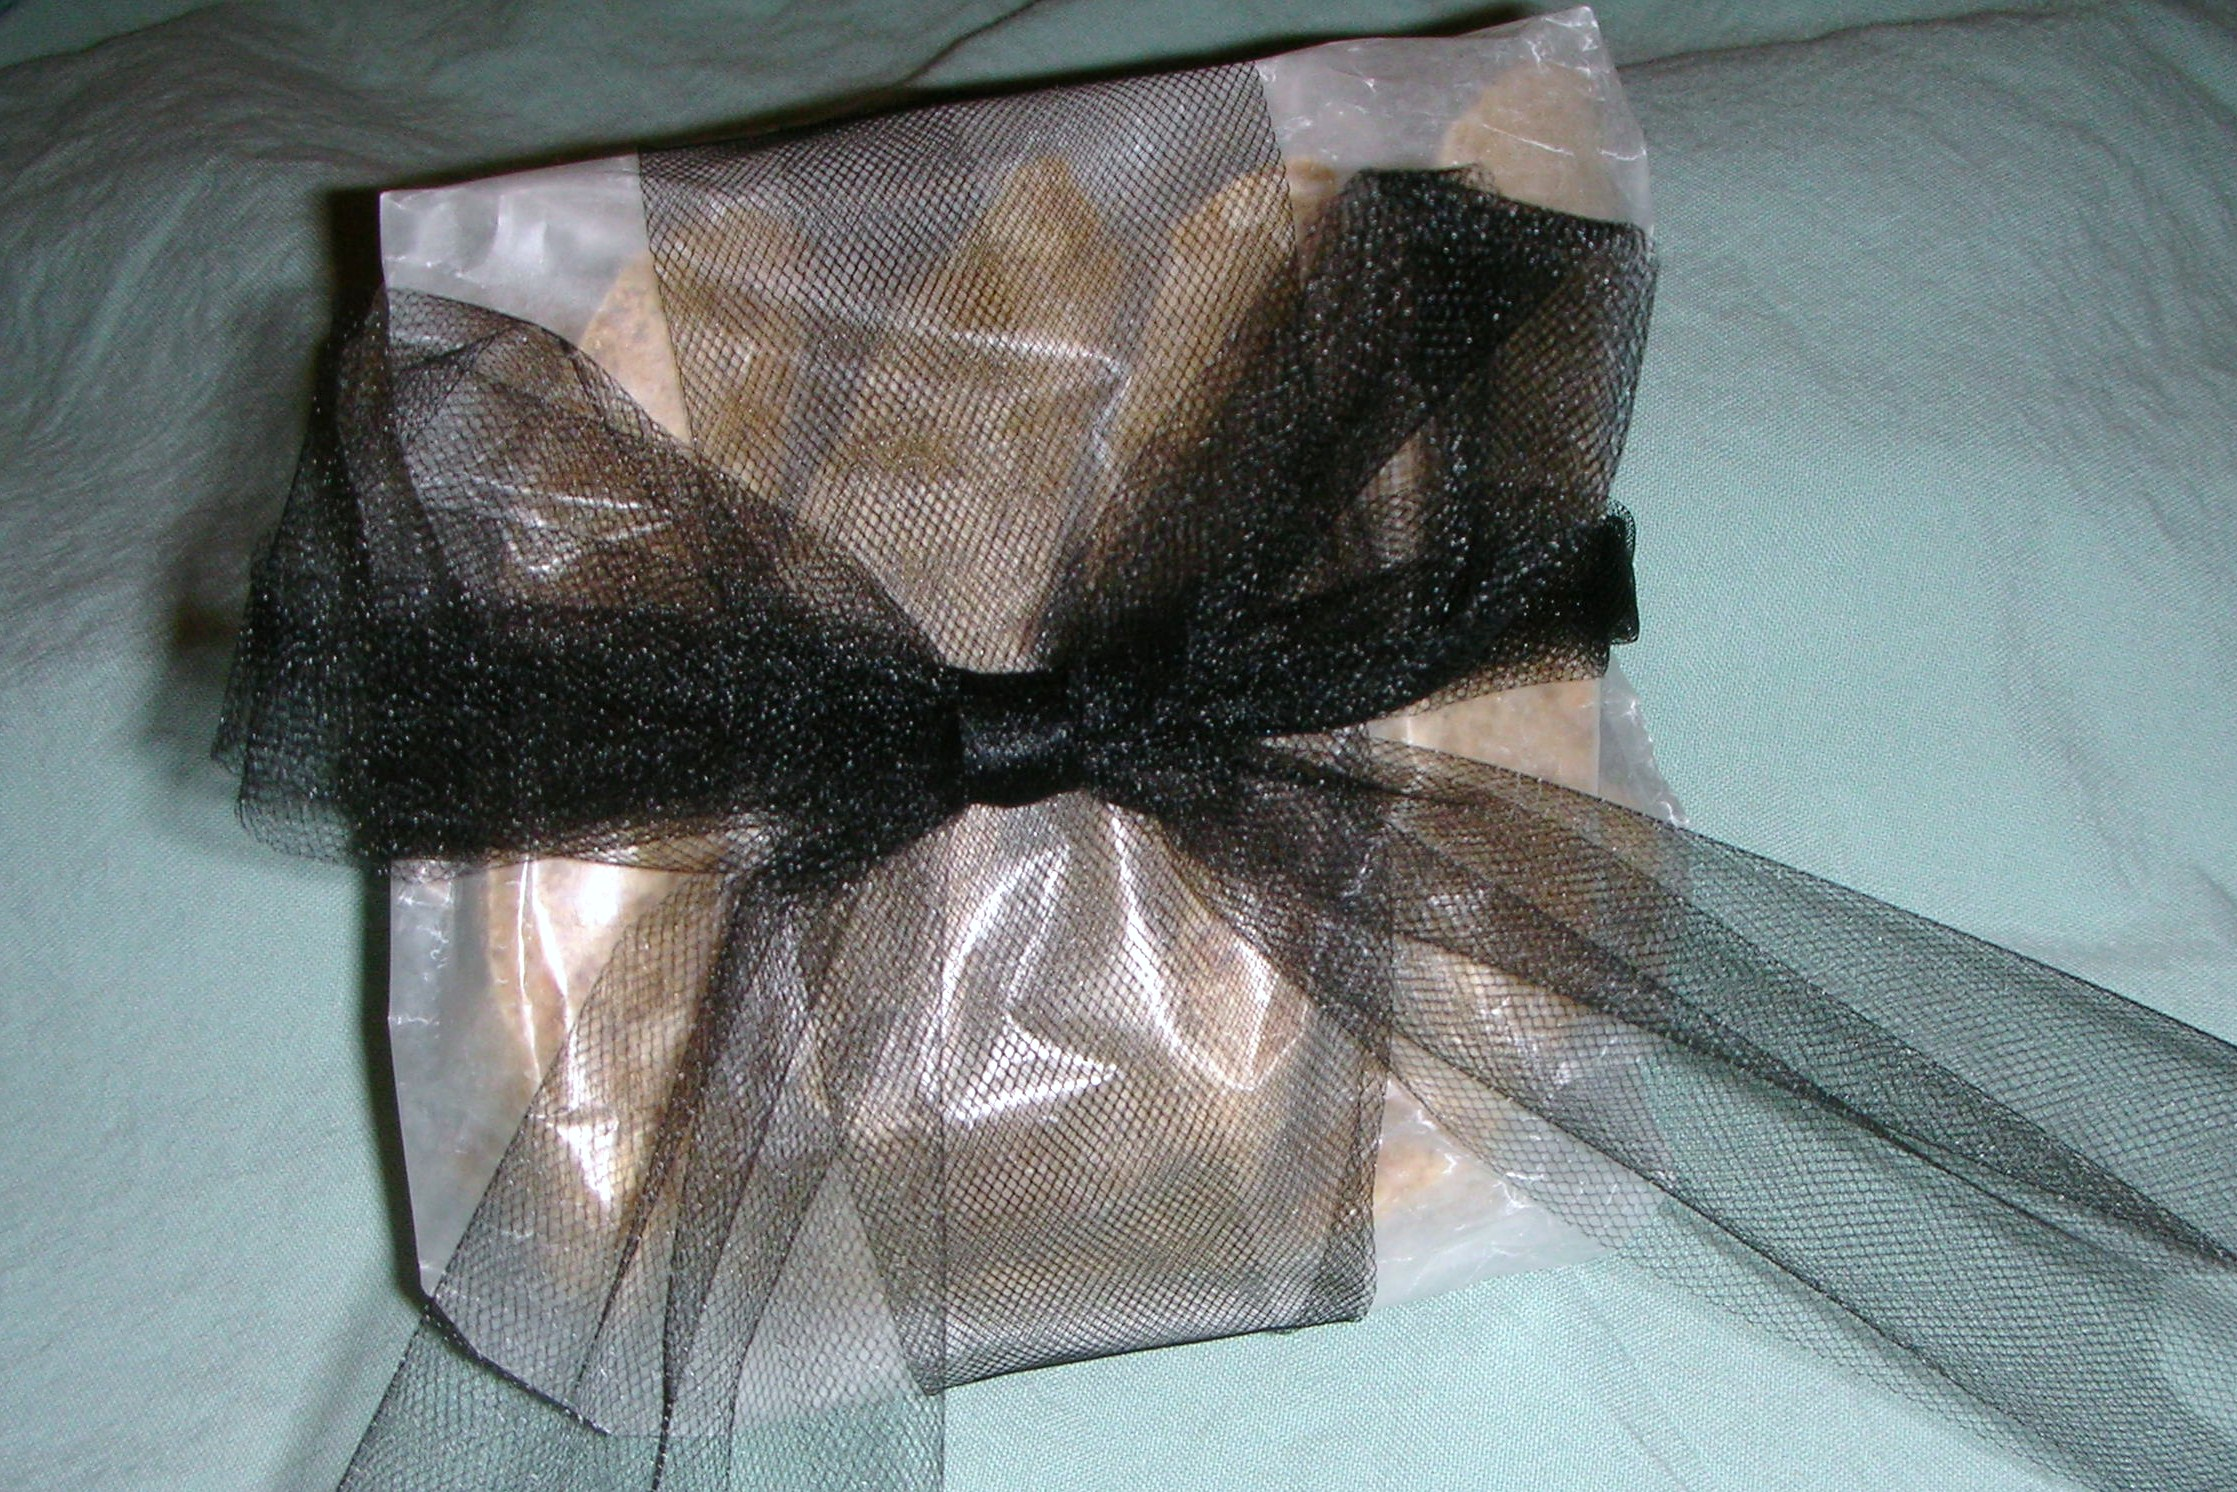 Tuscan almond biscotti, wrapped